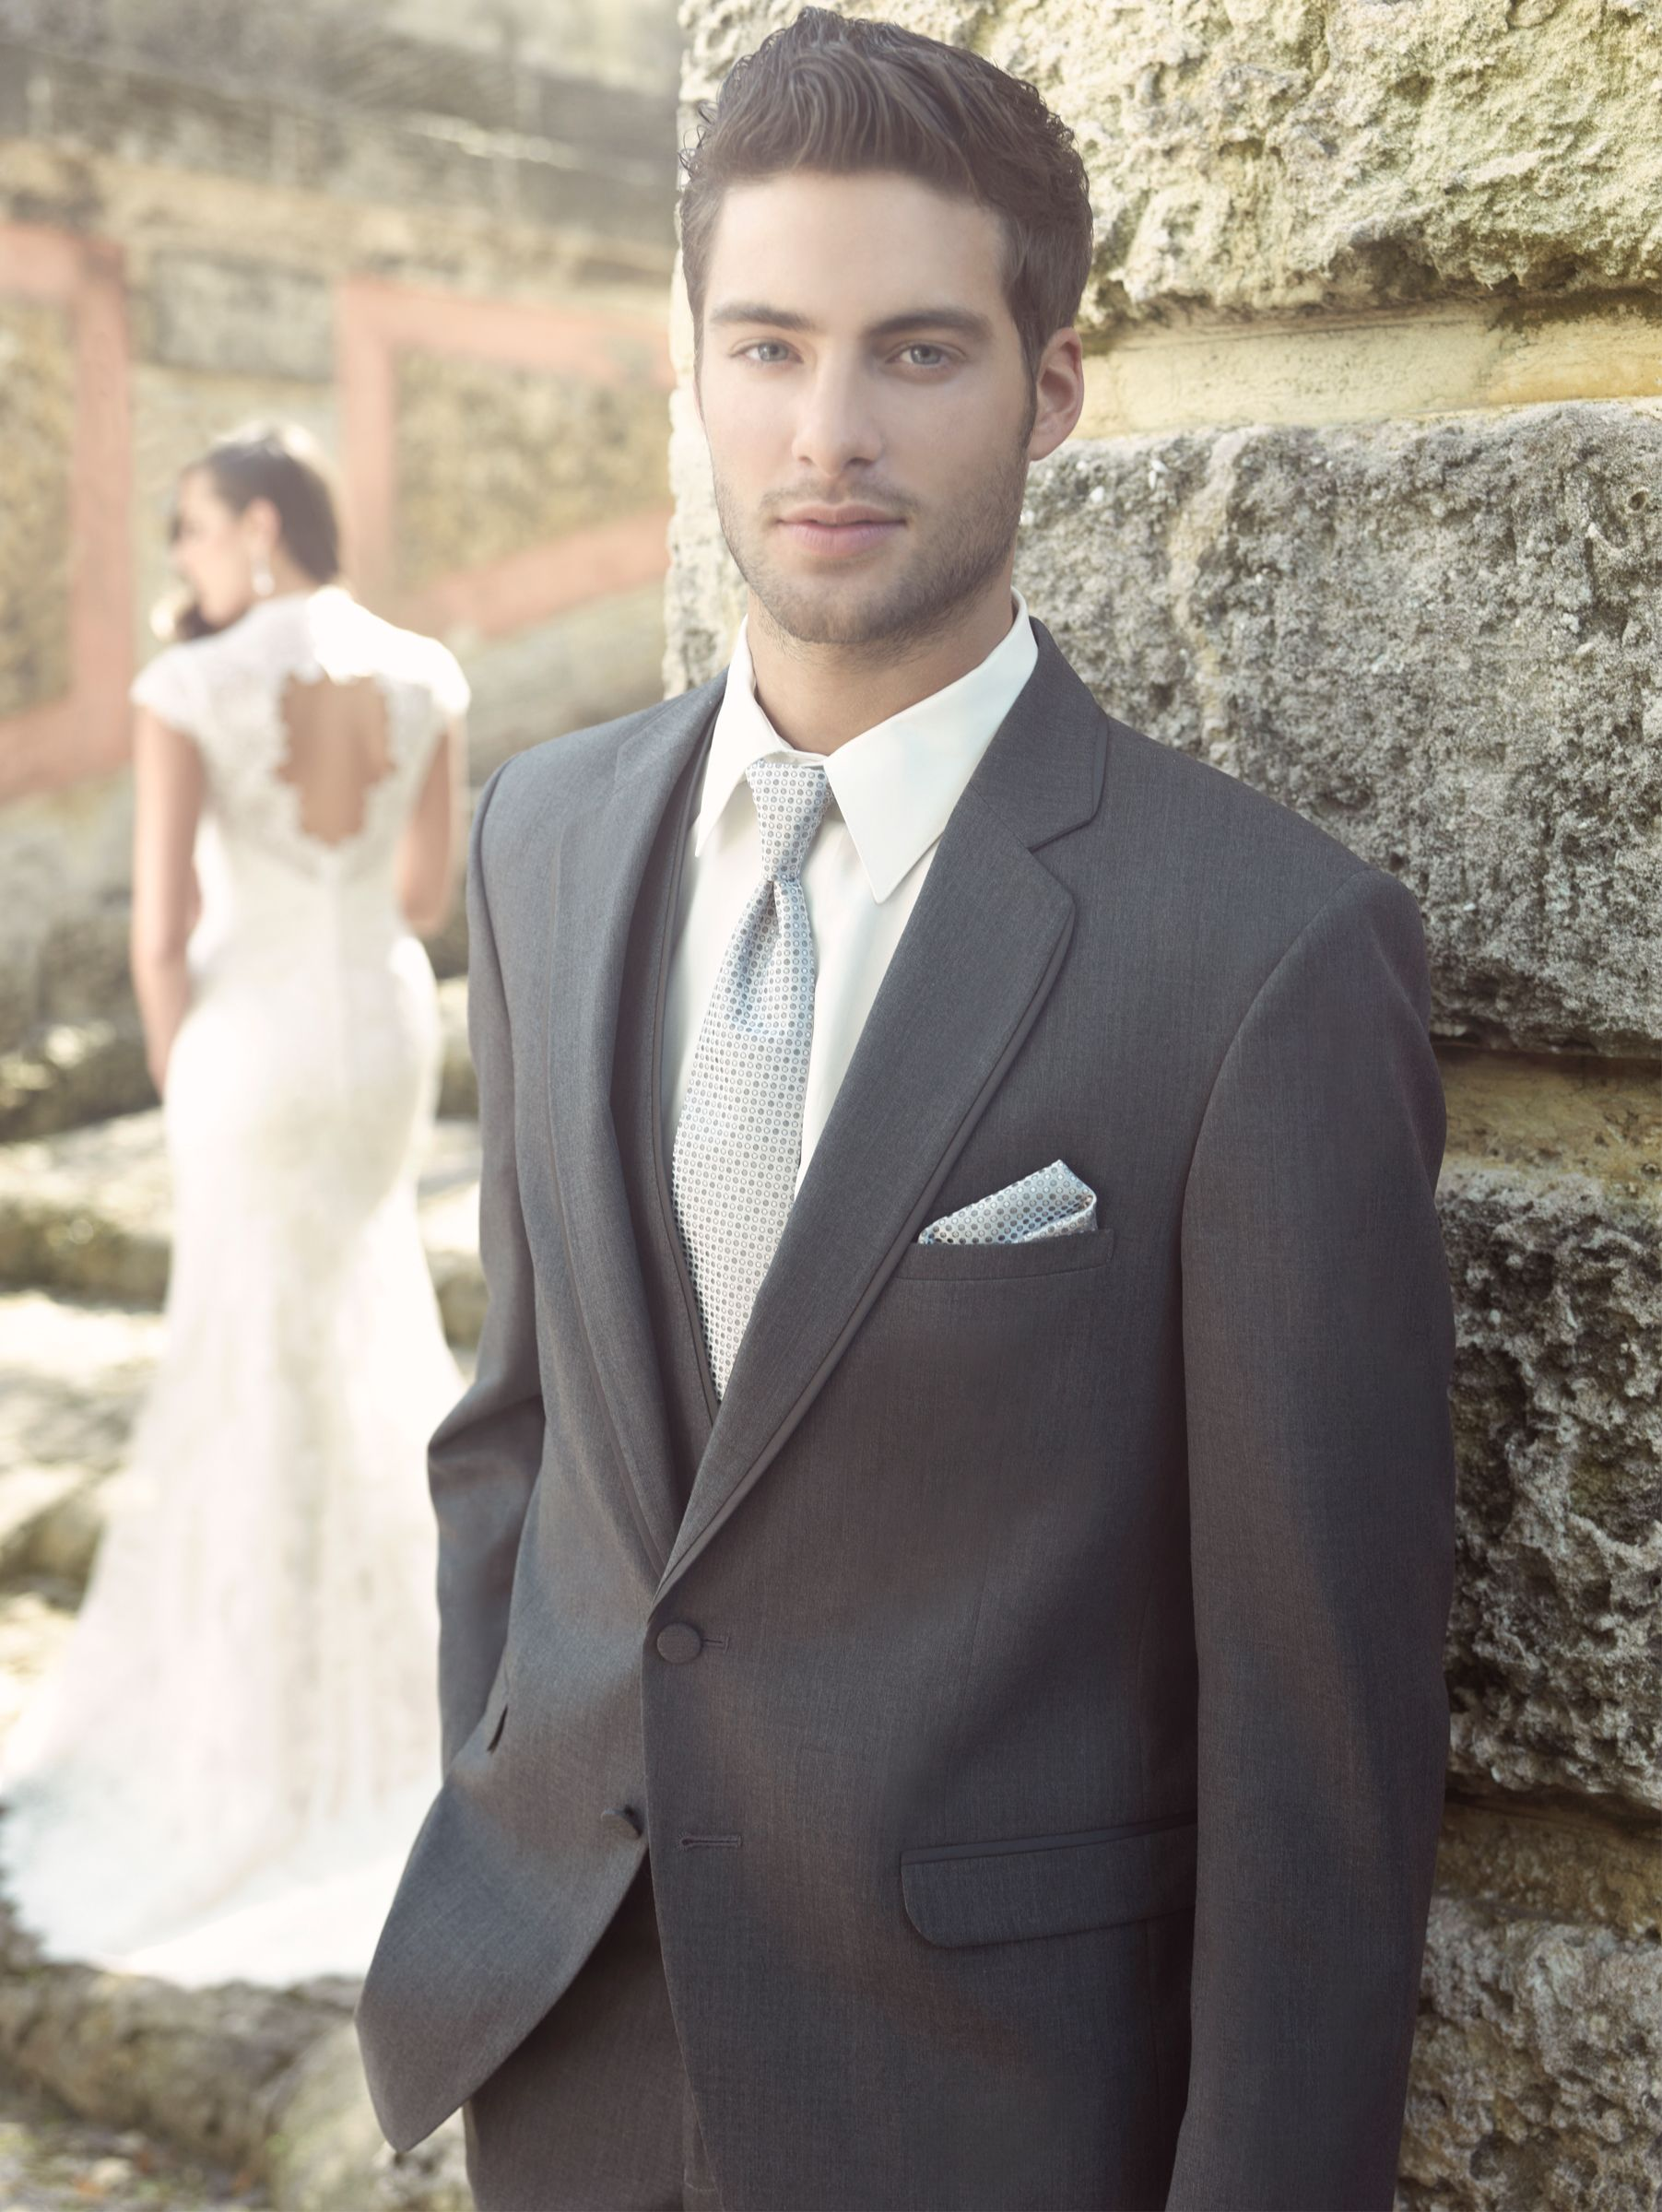 Wedding Suits For Men Inspiration For Male | Formal wear, Grey and ...